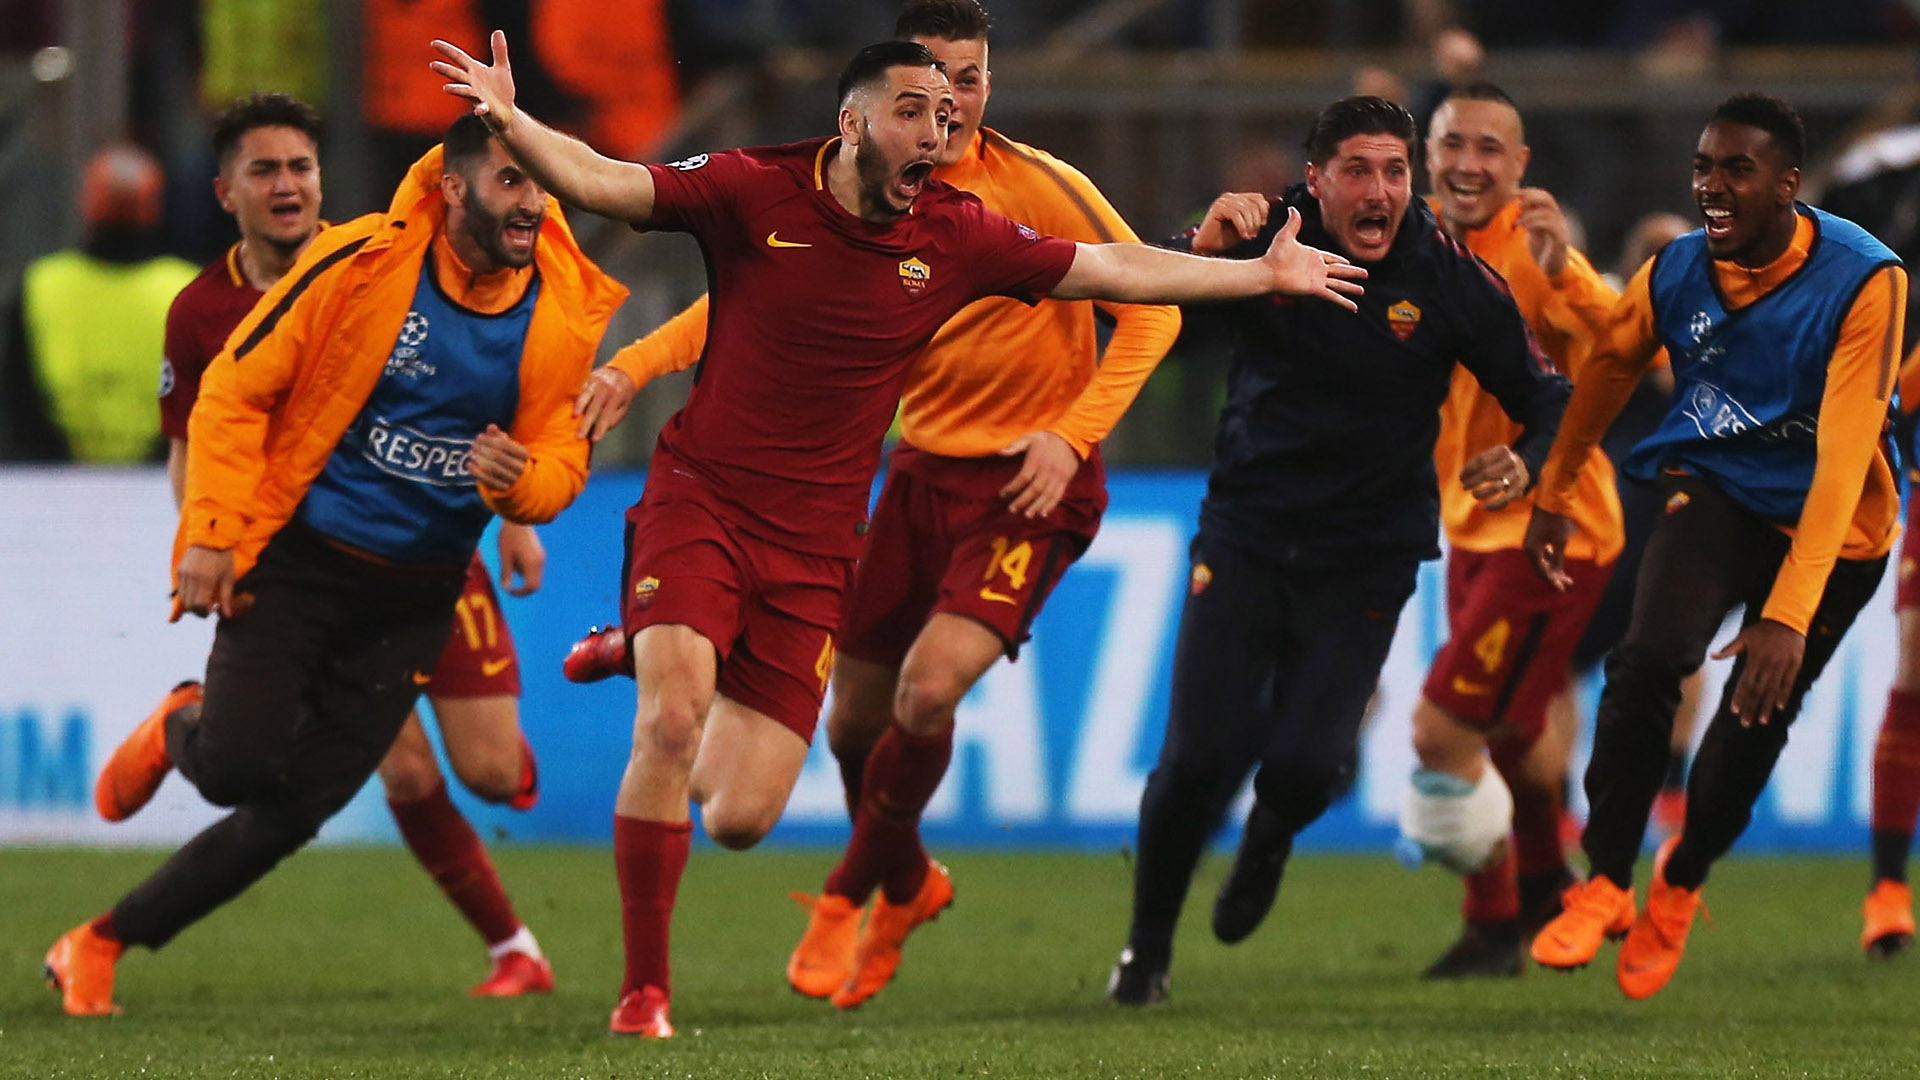 AS Roma - Juventus FC, 0 januarkl. 20:45